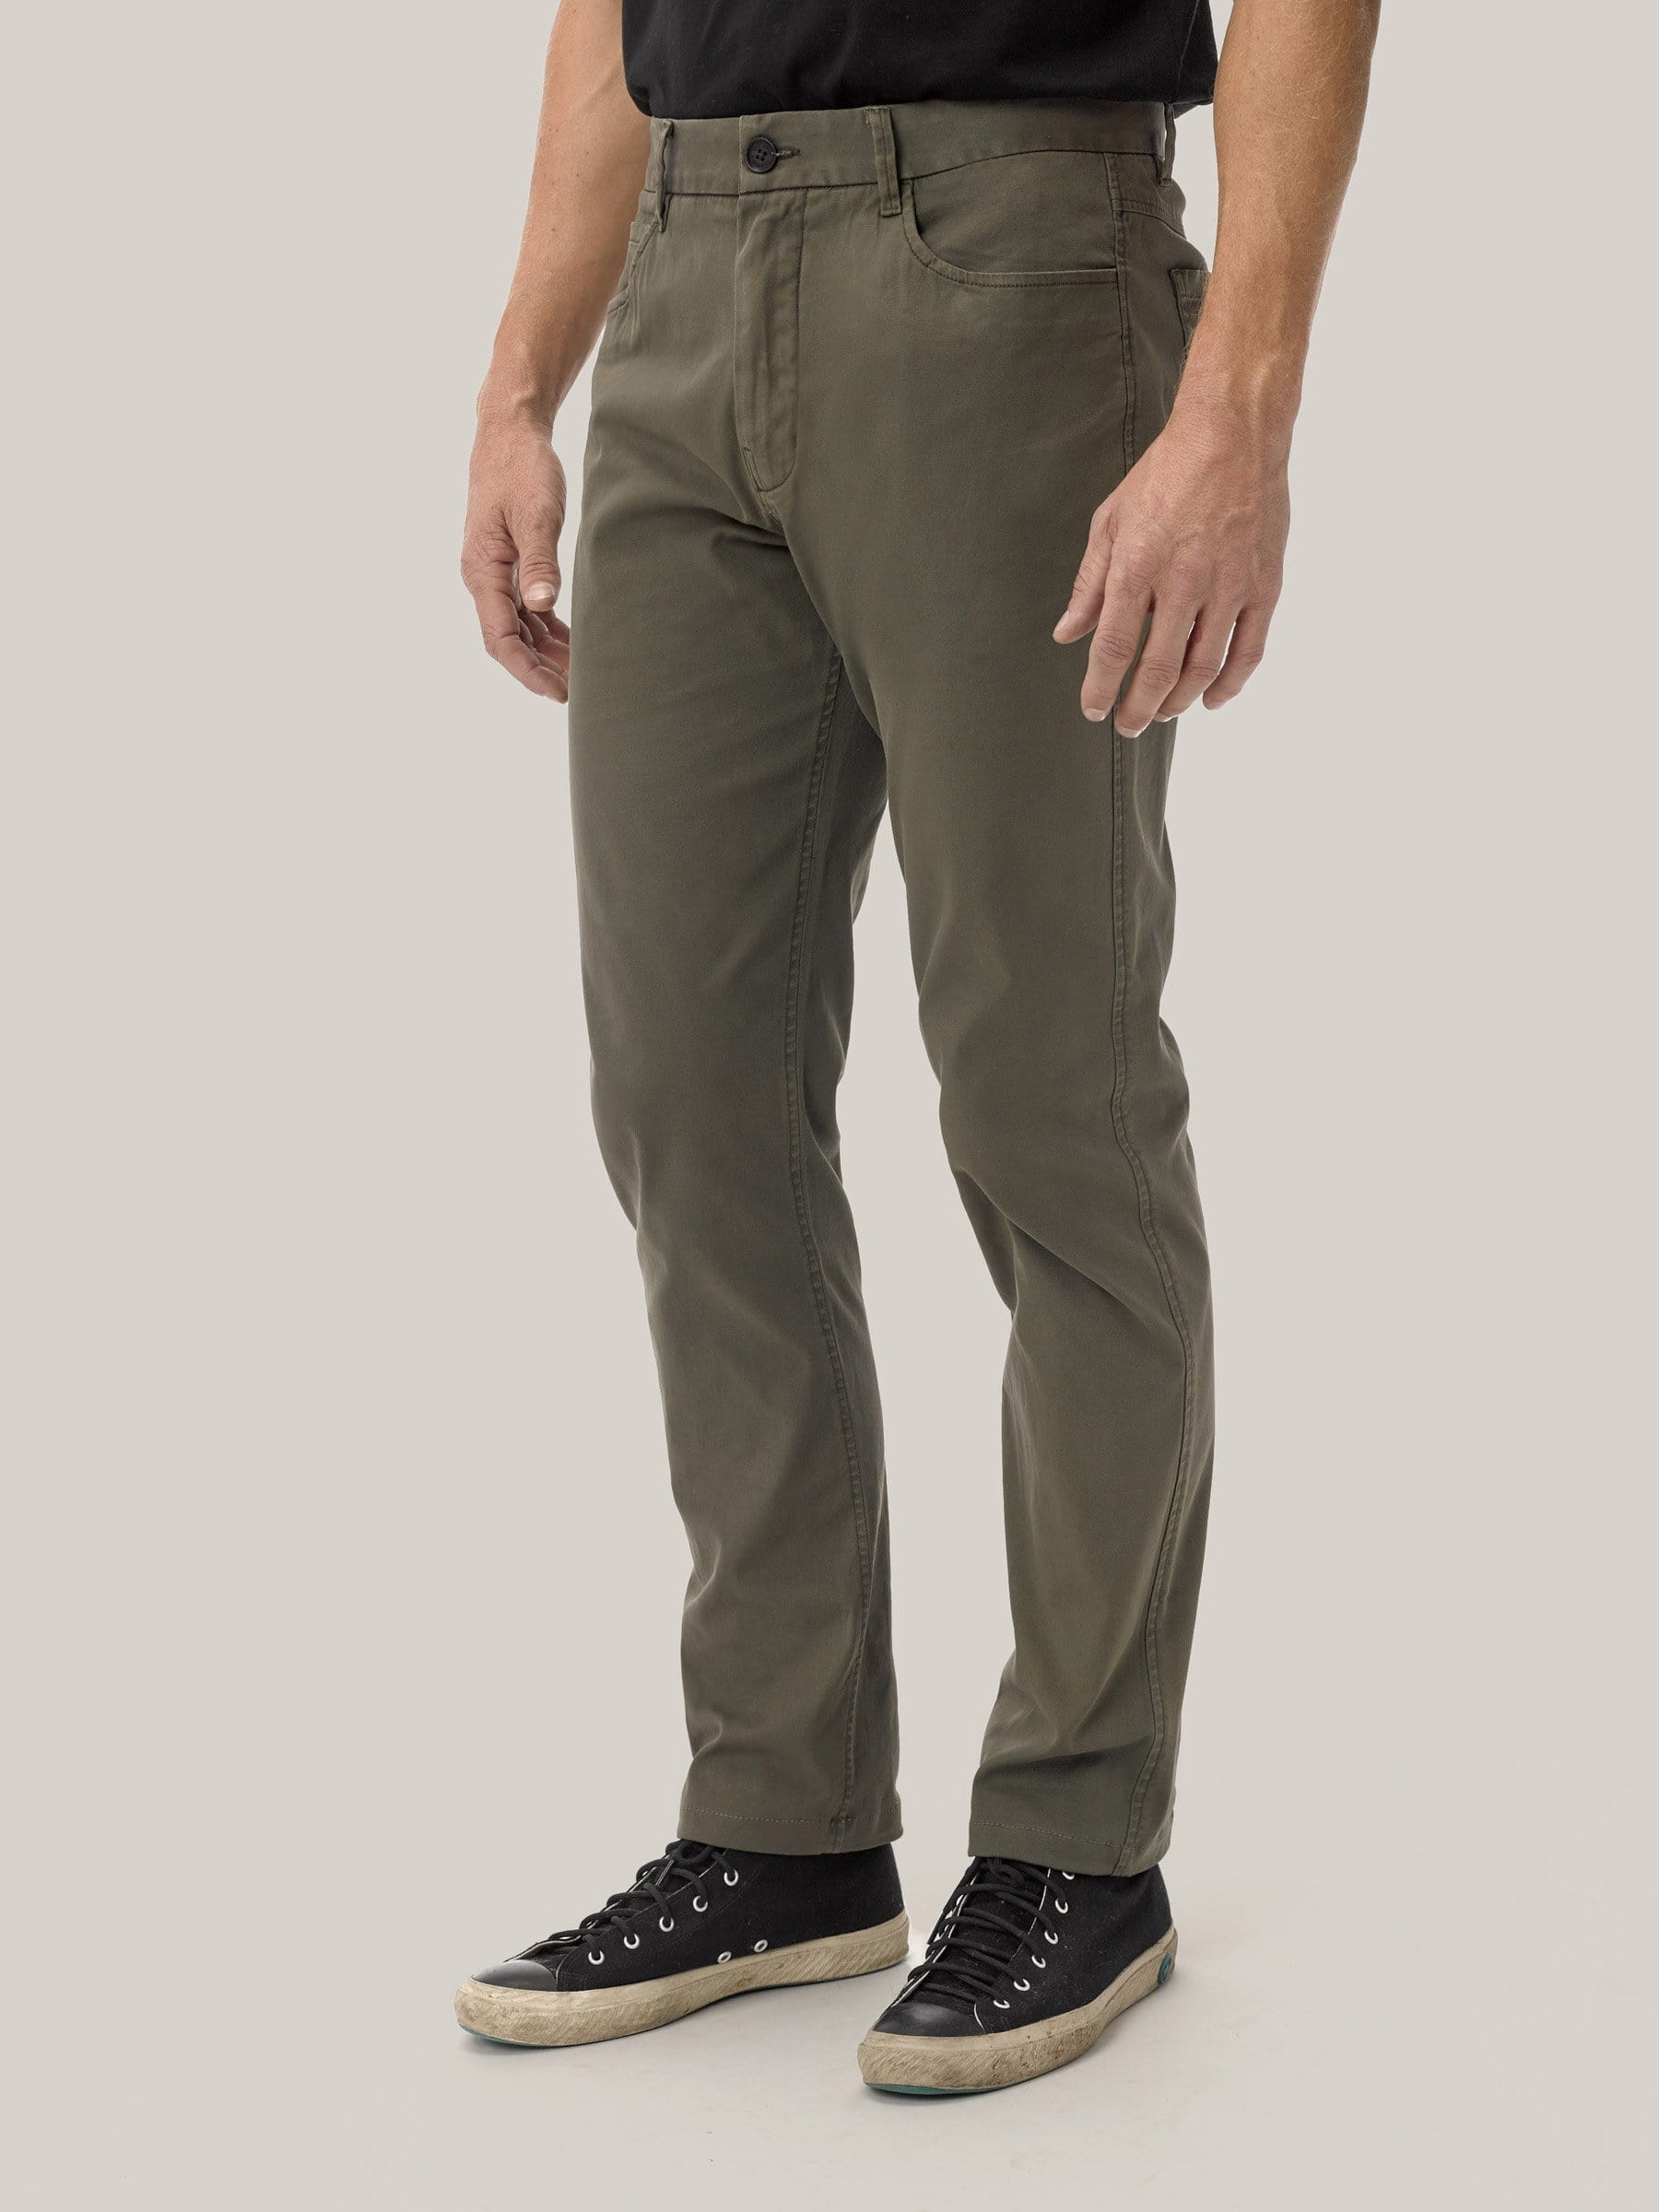 Buck Mason - Drab Vintage Canvas 5-Pocket Pant